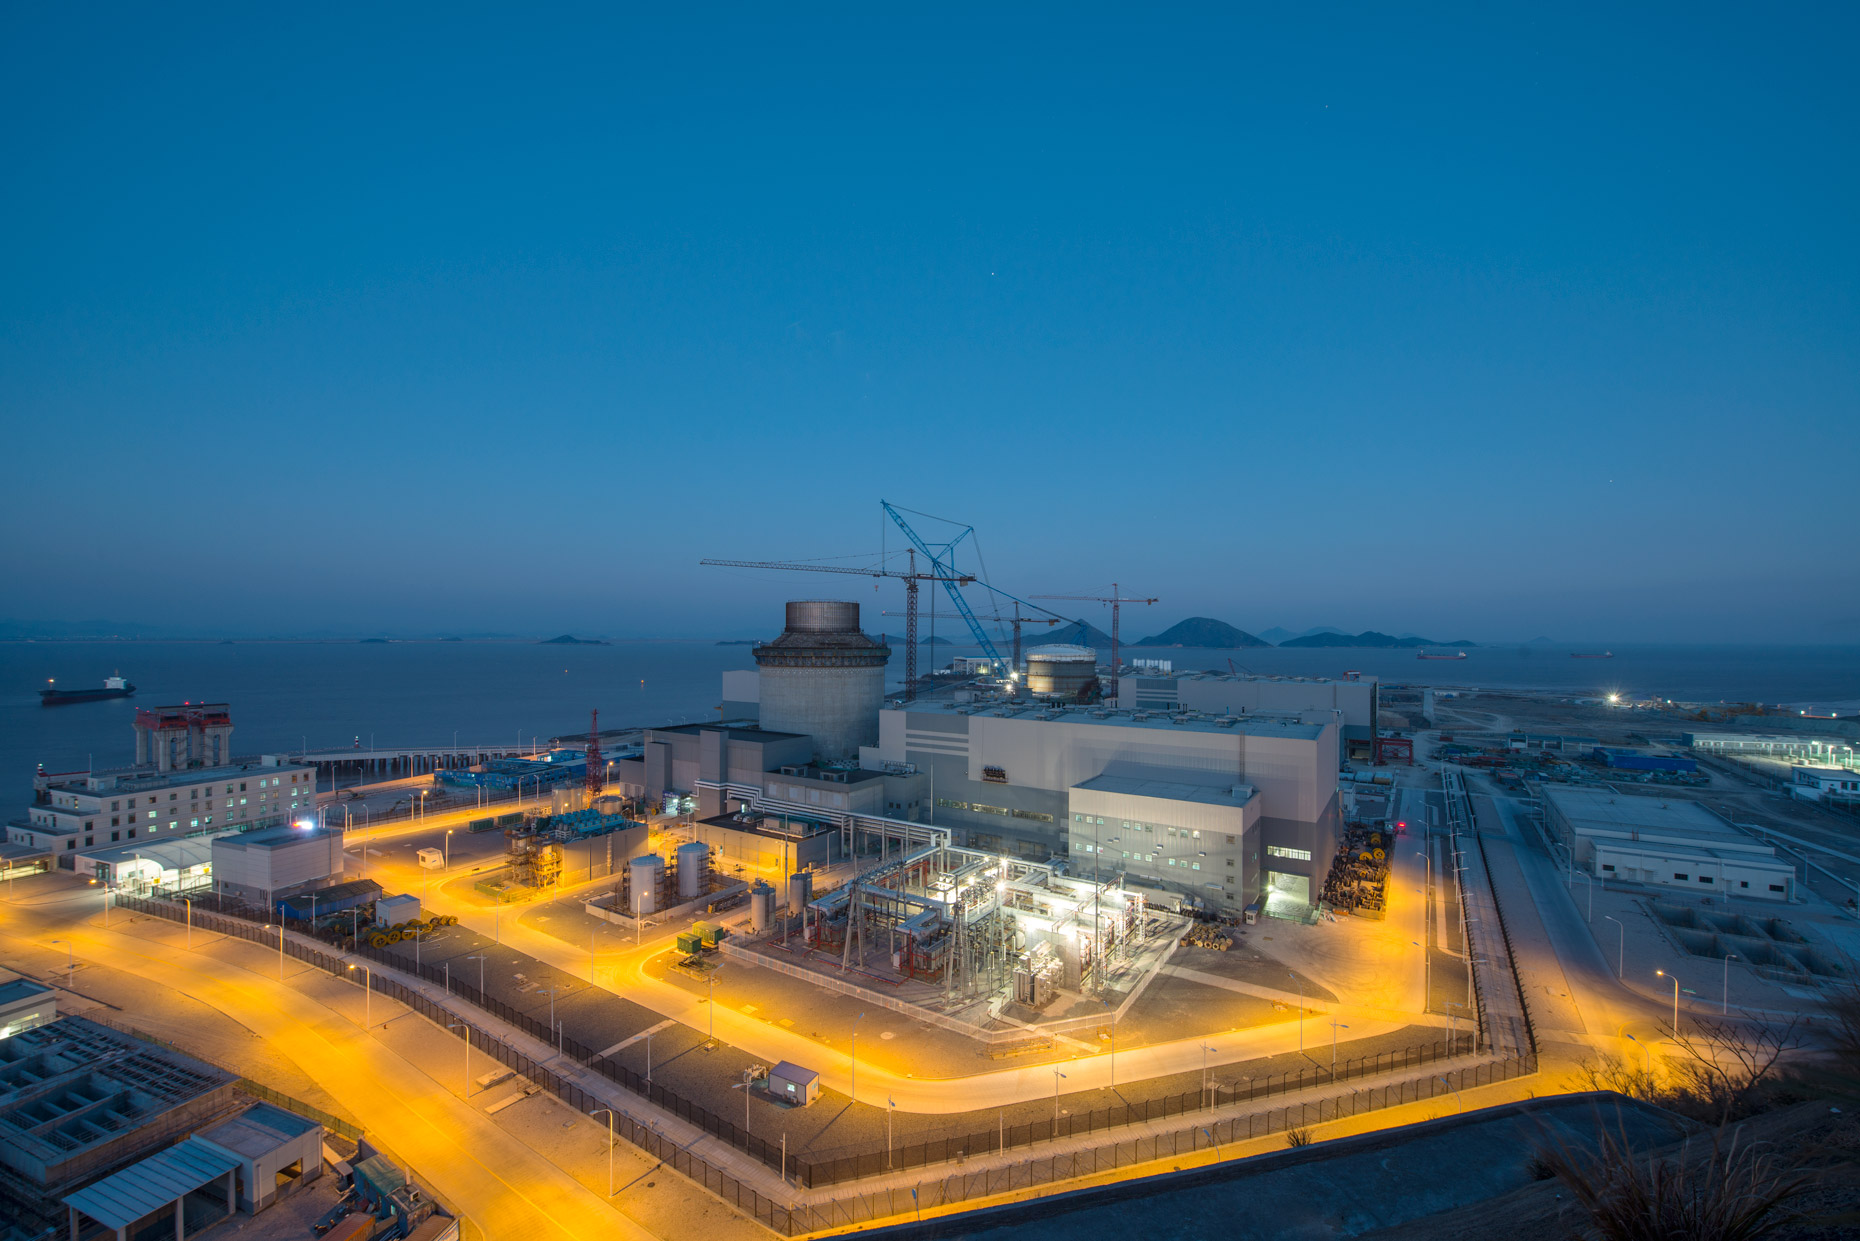 Sanmen Nuclear Facility | Westinghouse Toshiba | Industrial Photography | Stefen Chow | China